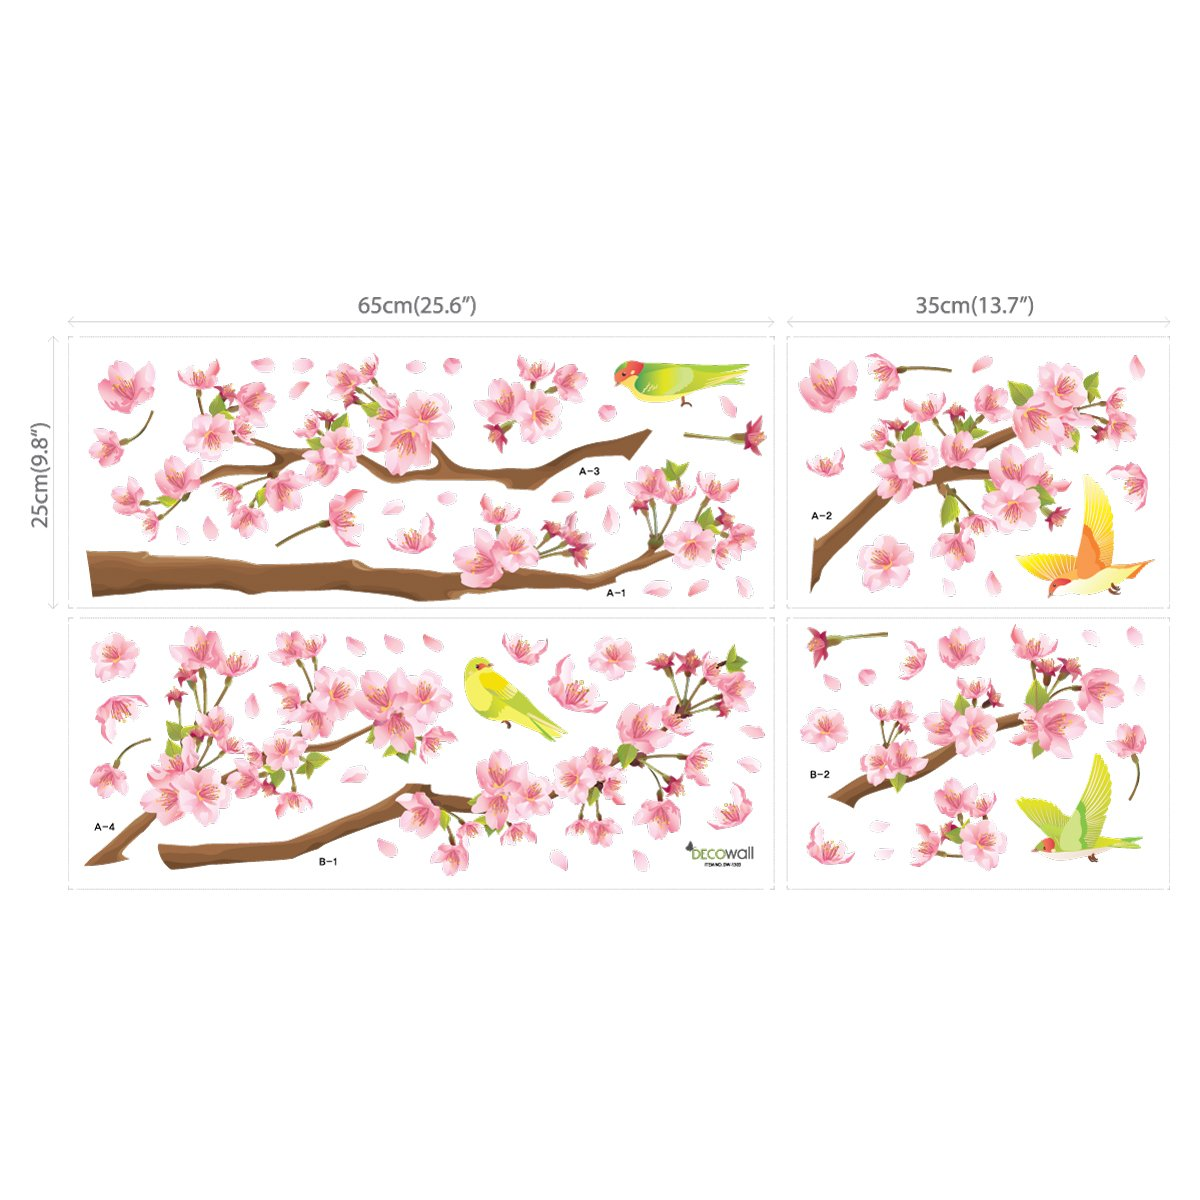 Decowall DW-1303 Cherry Blossoms and Birds Kids Wall Decals